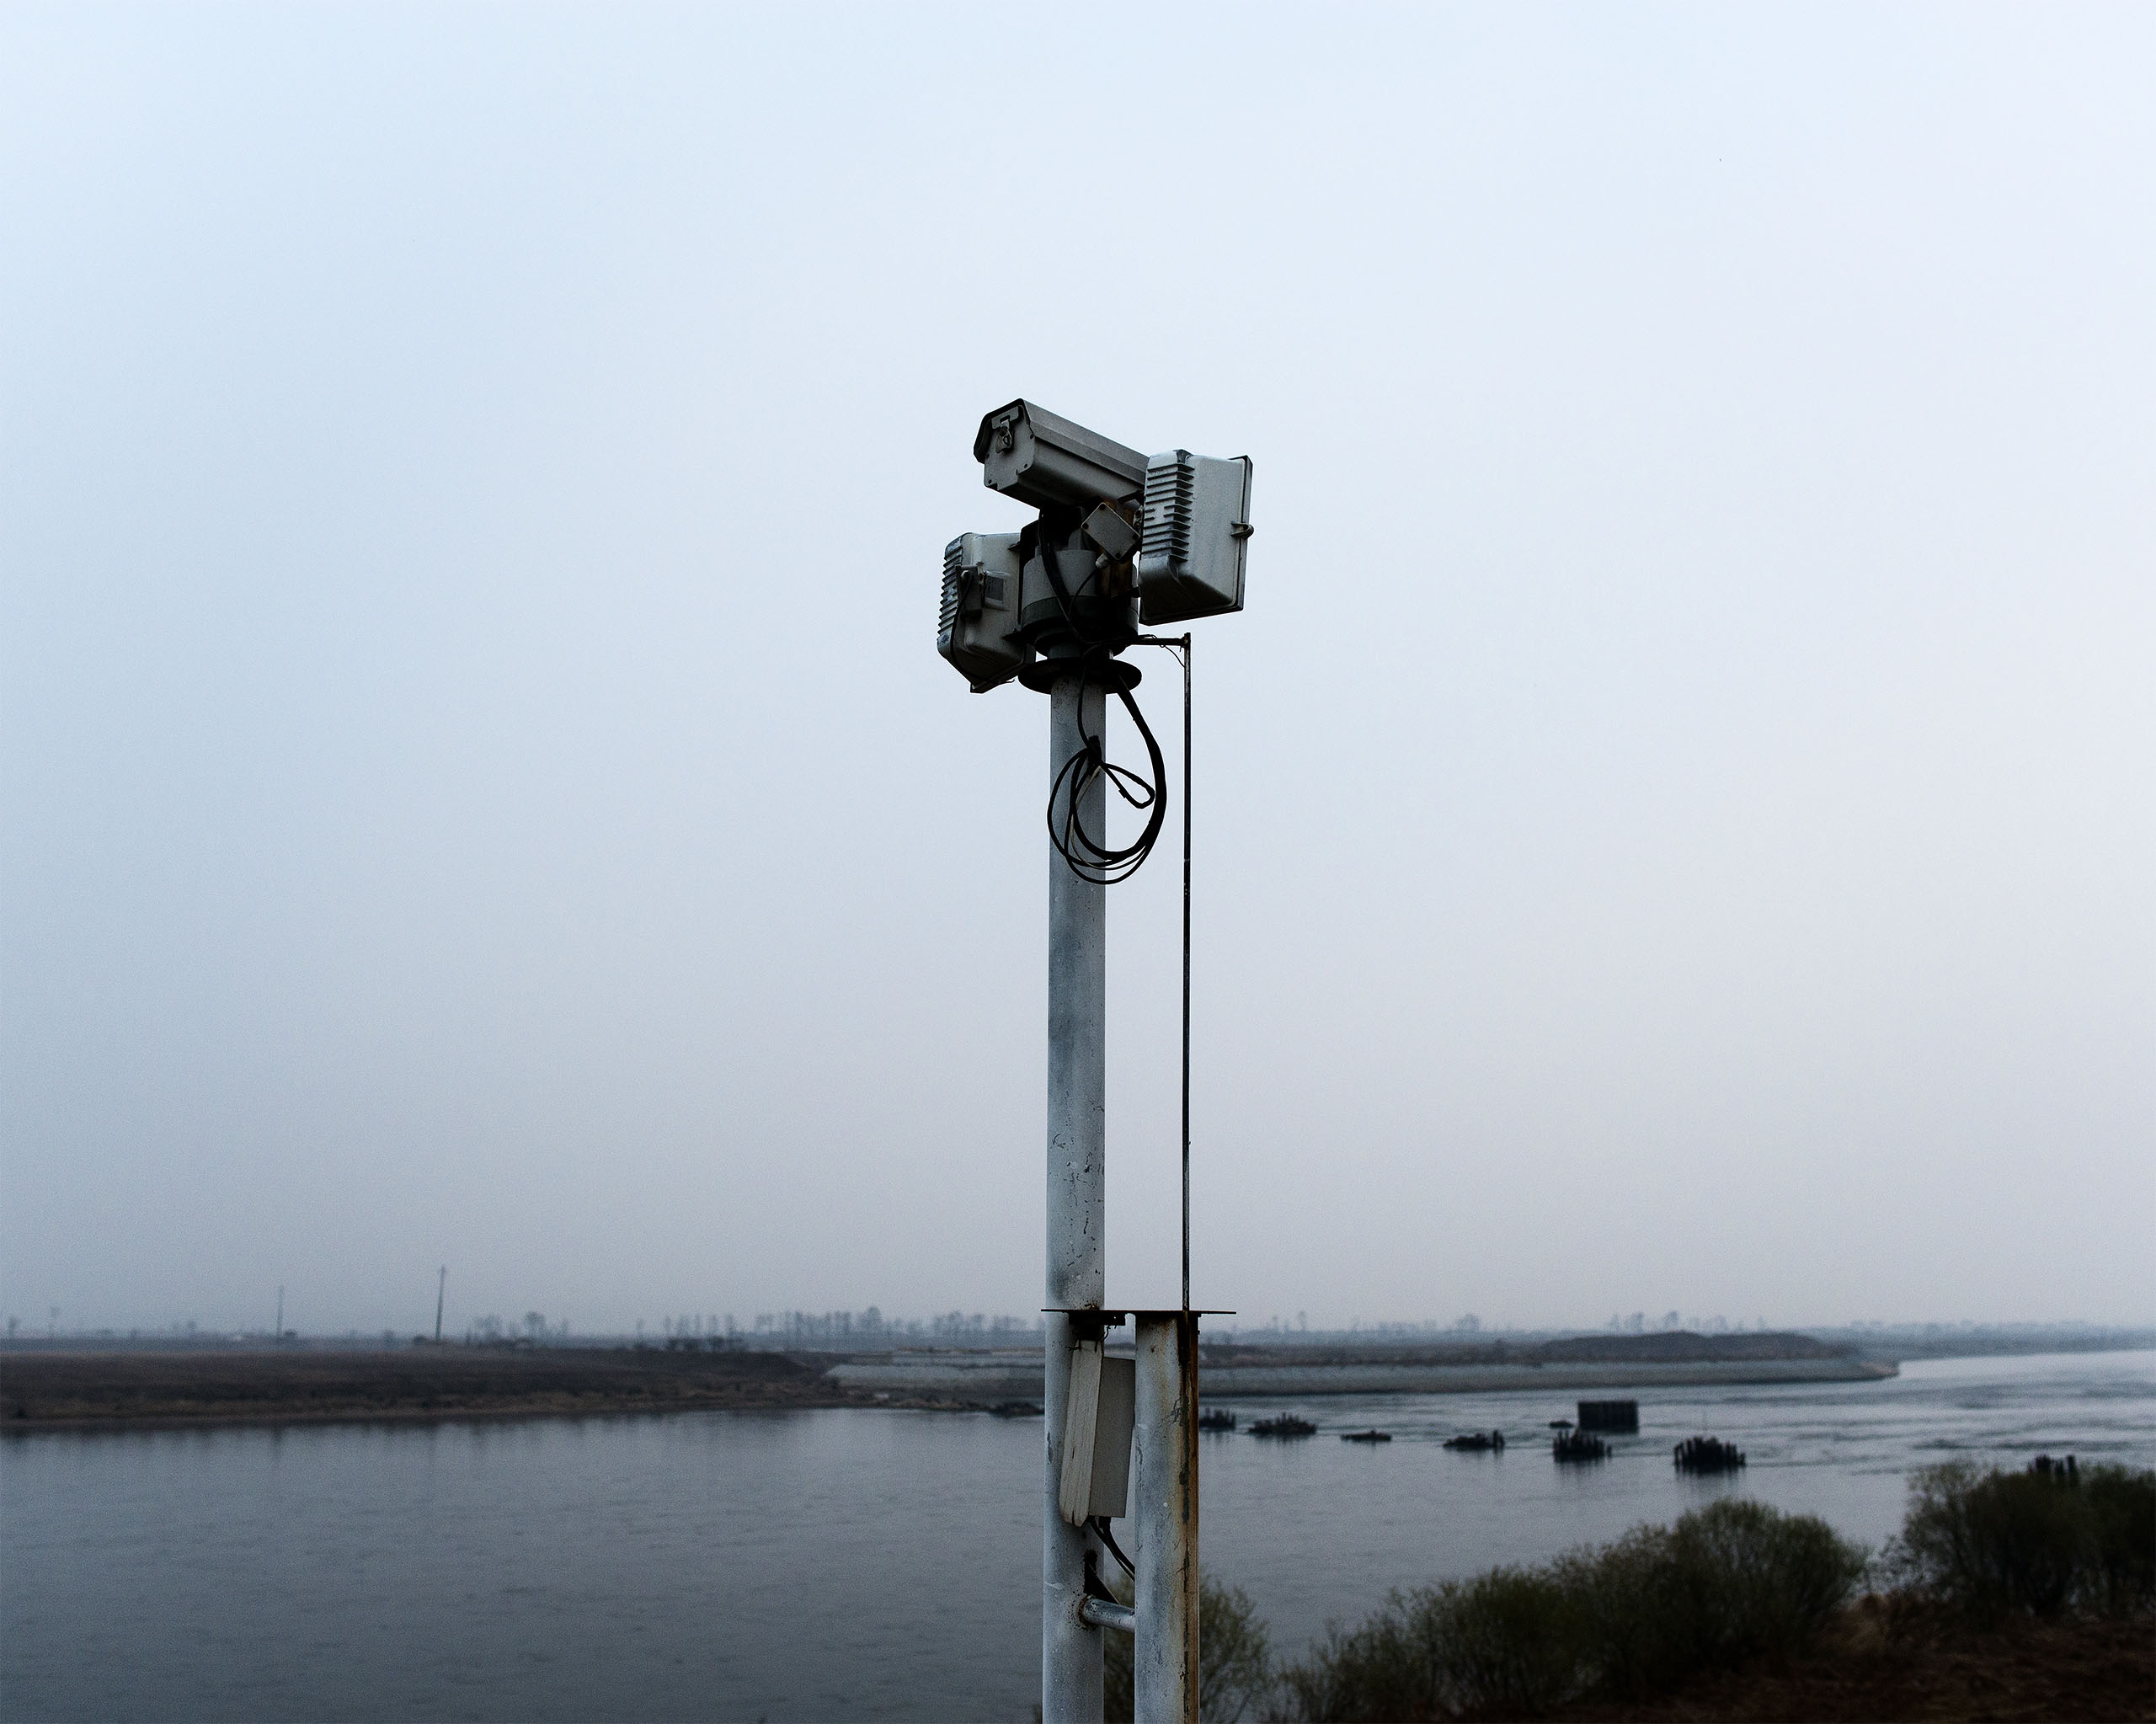 Security cameras in                               Dandong, China keep watch over a narrow stretch of the Yalu River that is sometimes crossed by North Korean defectors.